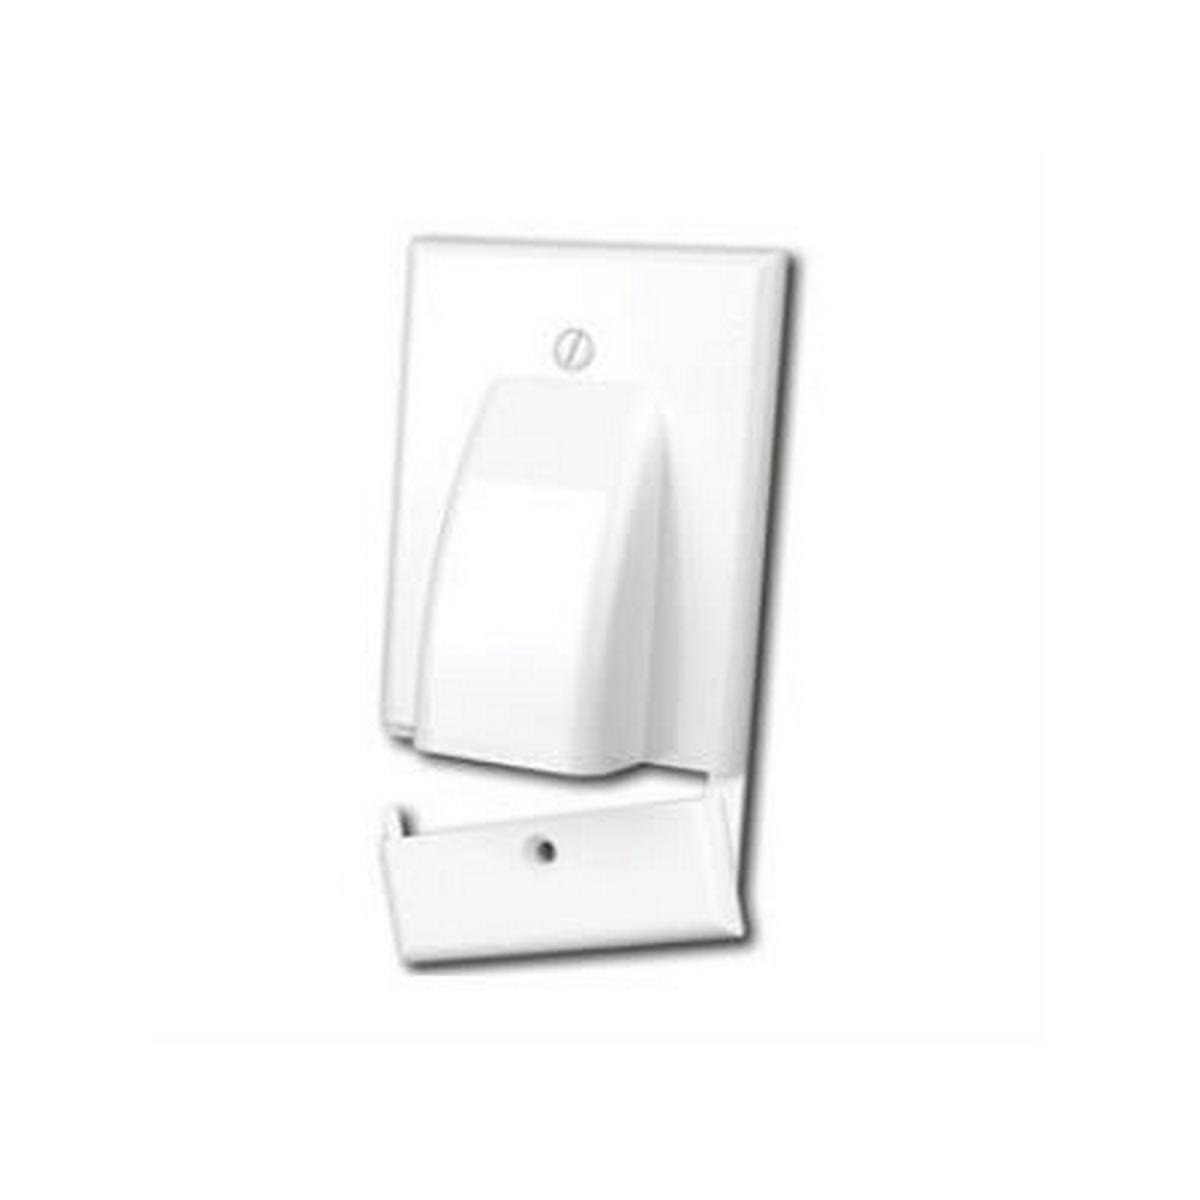 Vanco 120617 WP BULK CBL HINGED 1 GANG WHT